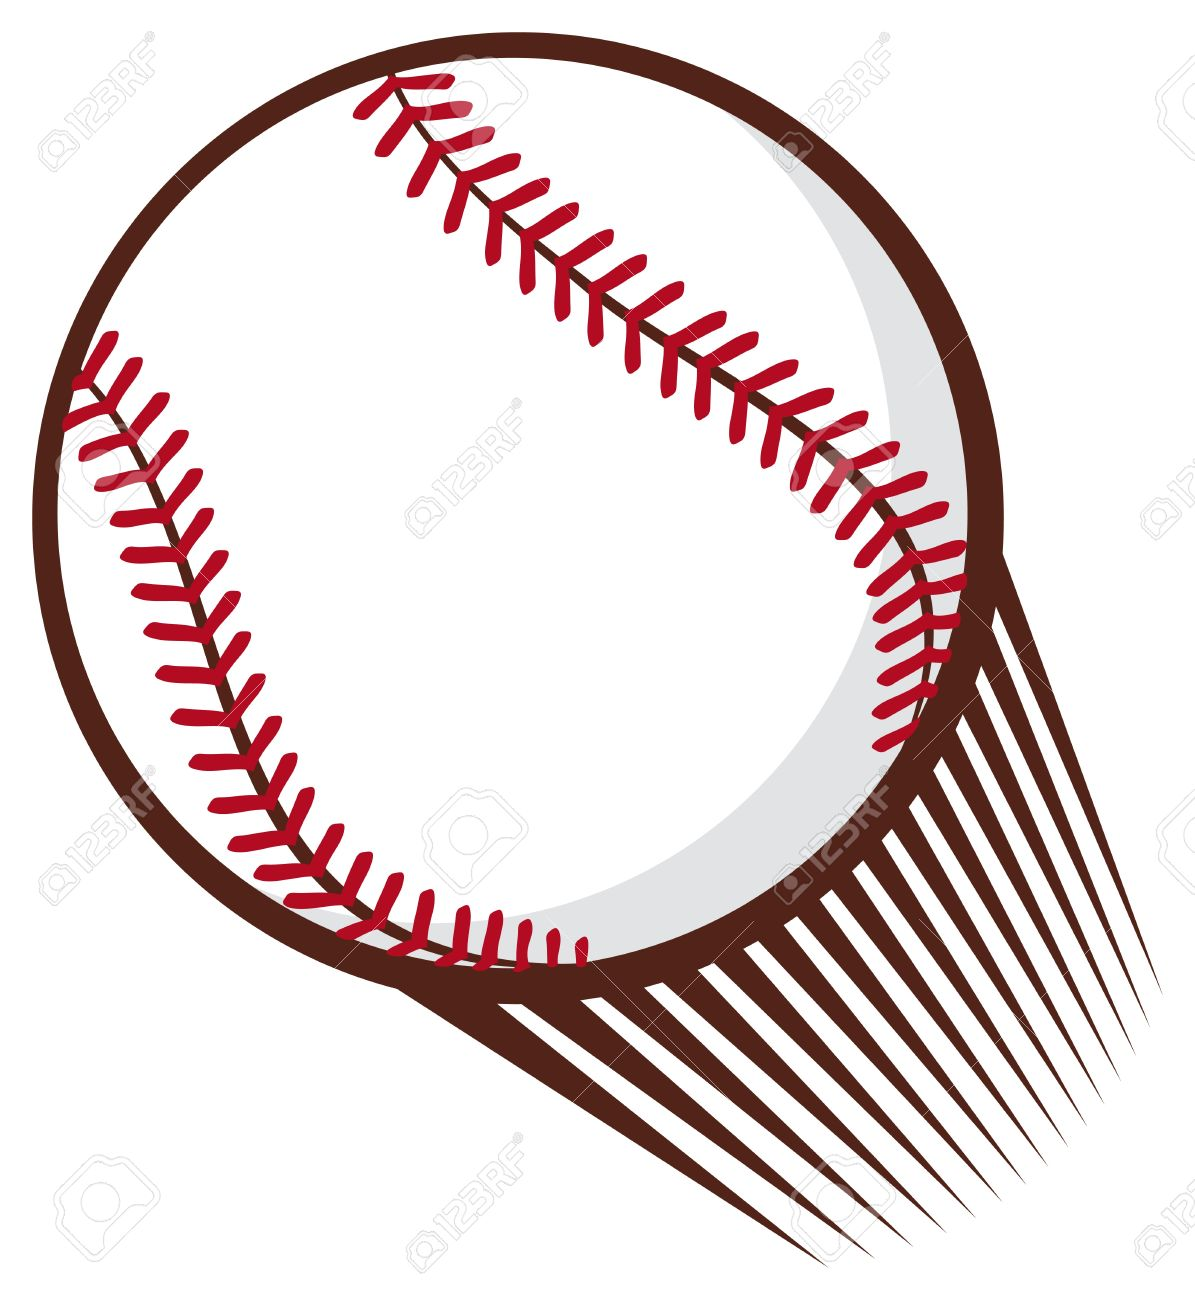 1,818 Home Run Baseball Cliparts, Stock Vector And Royalty Free ...